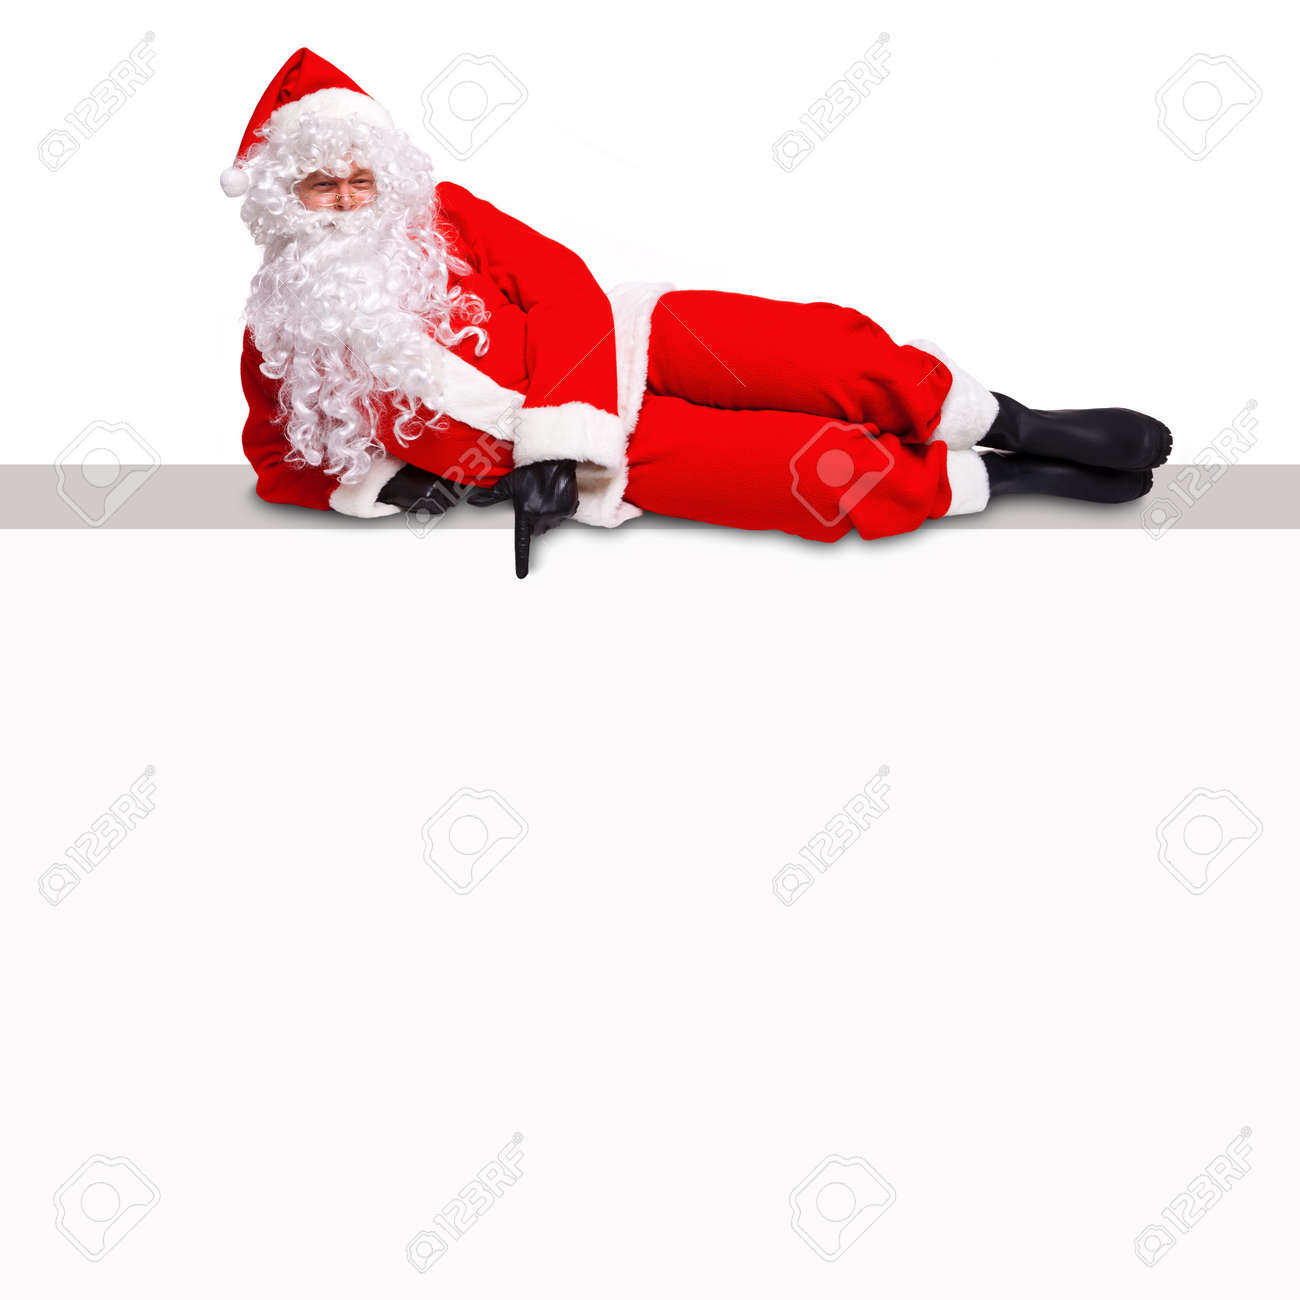 Santa Claus lying on top of a blank billboard sign pointing at an empty white area where you can add your own text. Stock Photo - 16762813